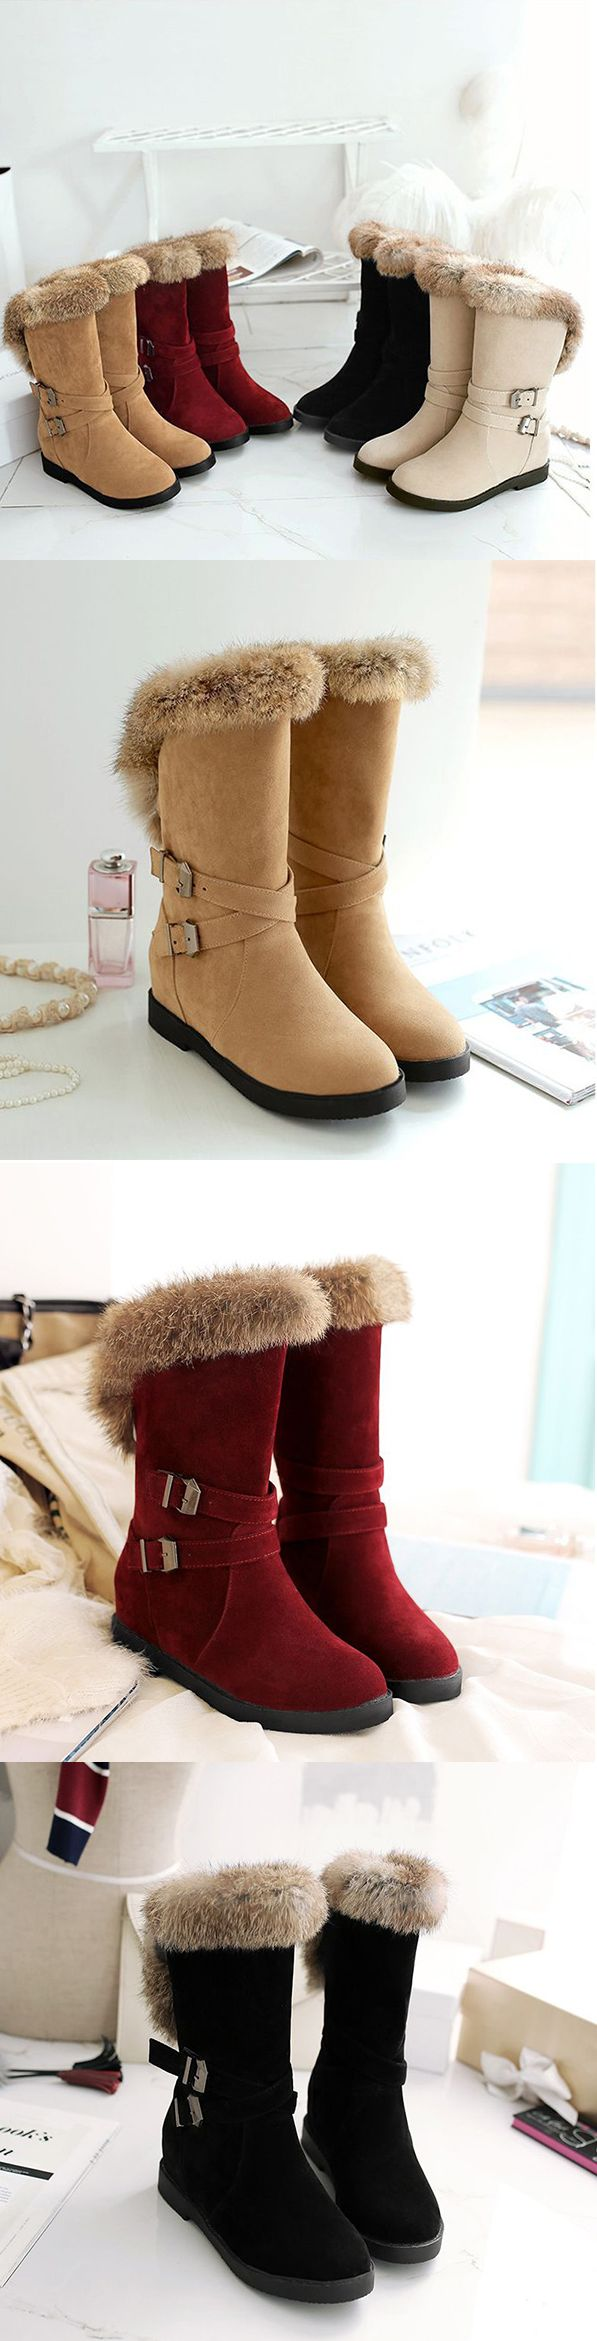 US$39.05Large Size Buckle Furry #Boots